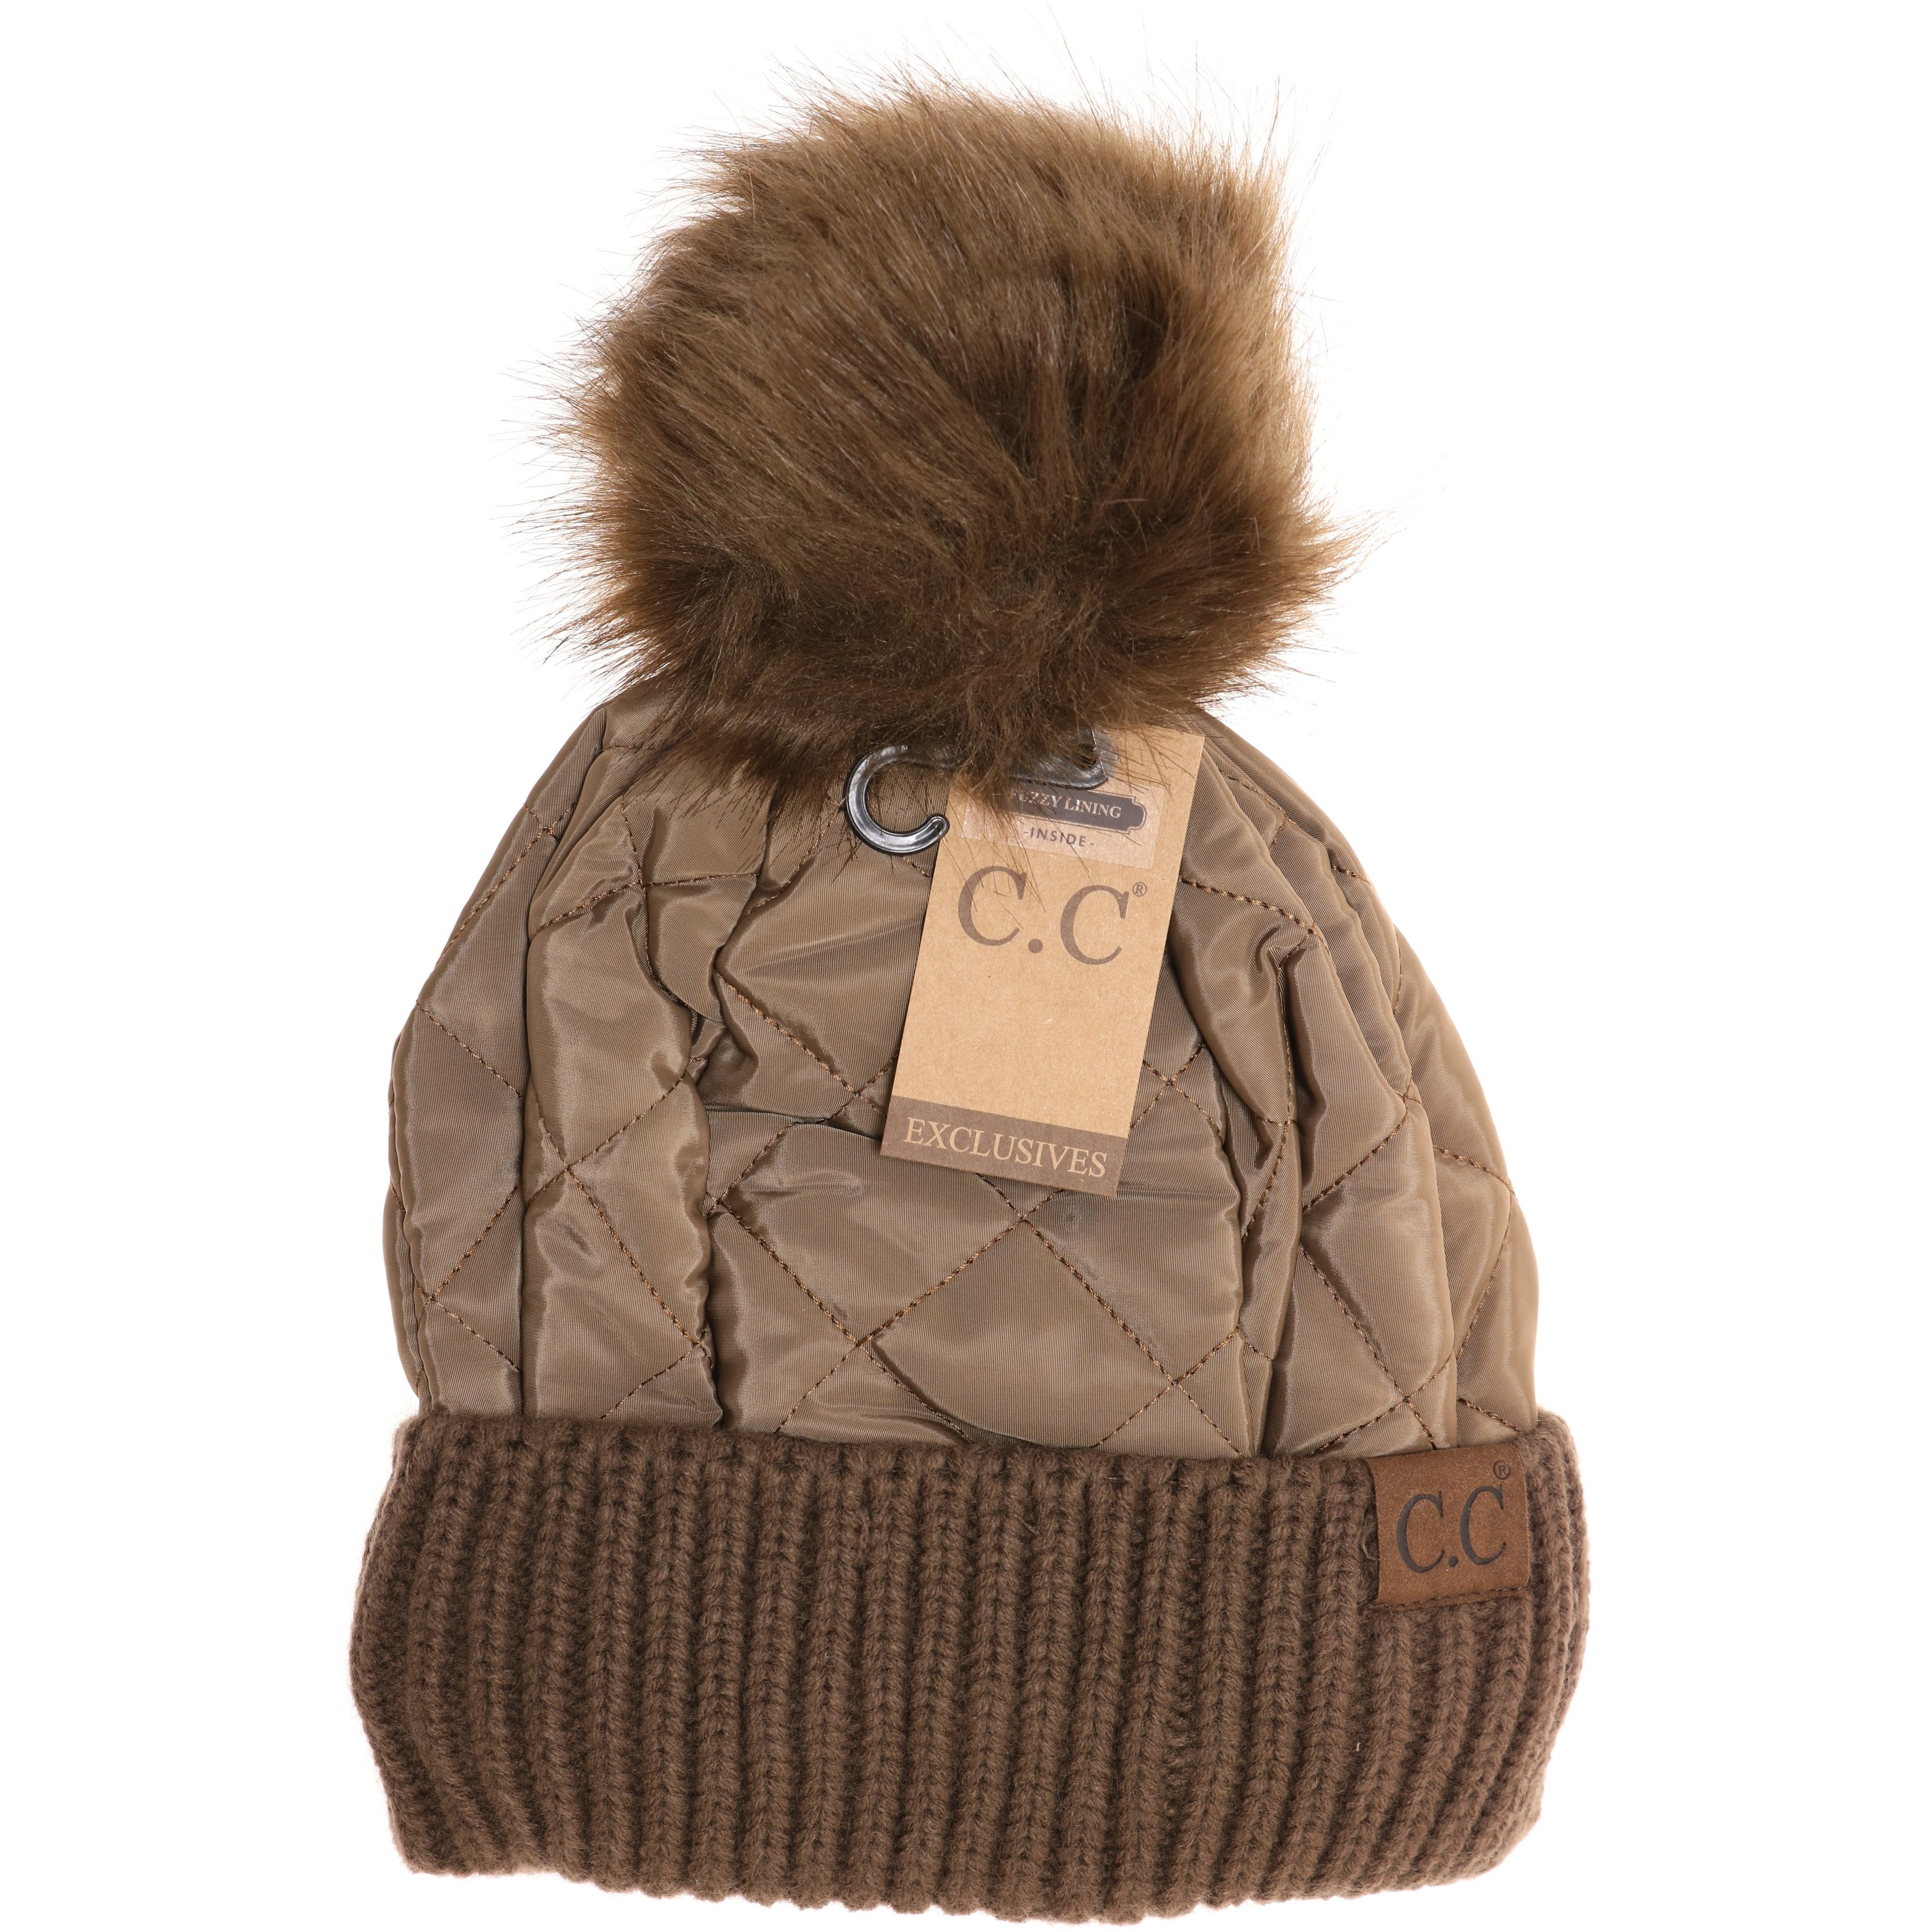 c14b13f0e Fleece Lined Quilted Puffer CC Pom Beanie HAT1739